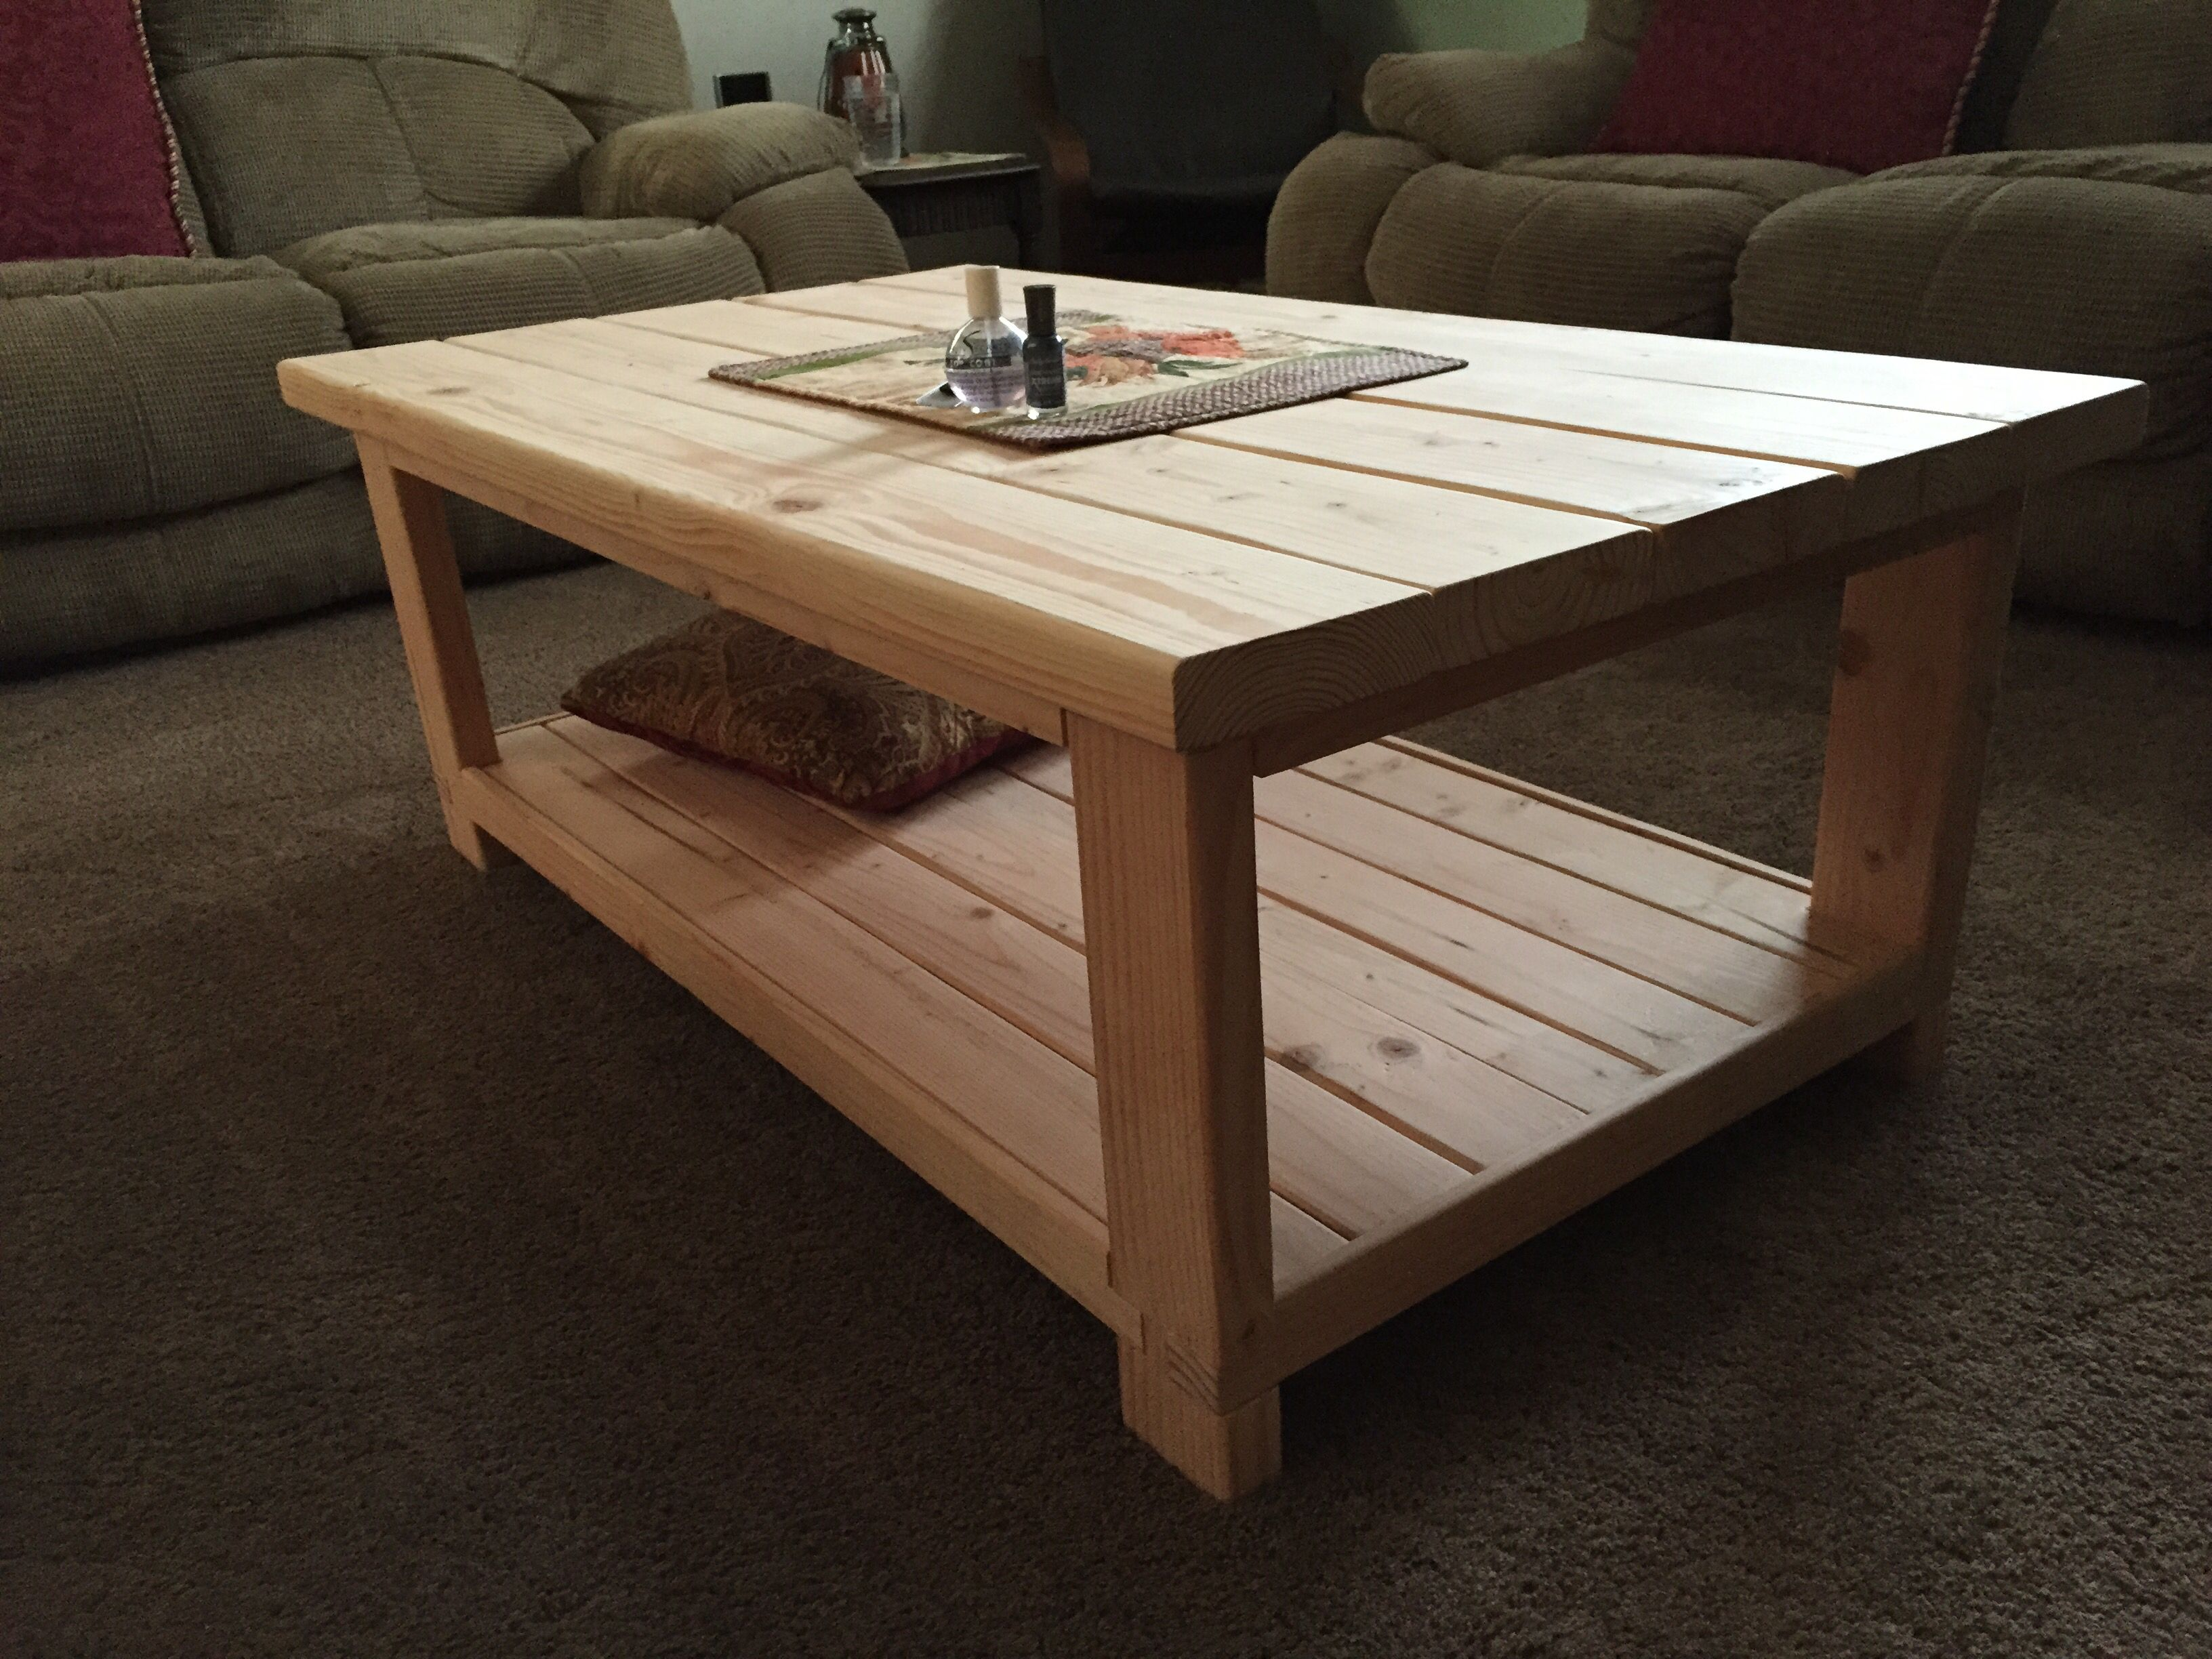 2x4 Base With 2x6 Top Rustic Coffee Table Woodworking In 2019